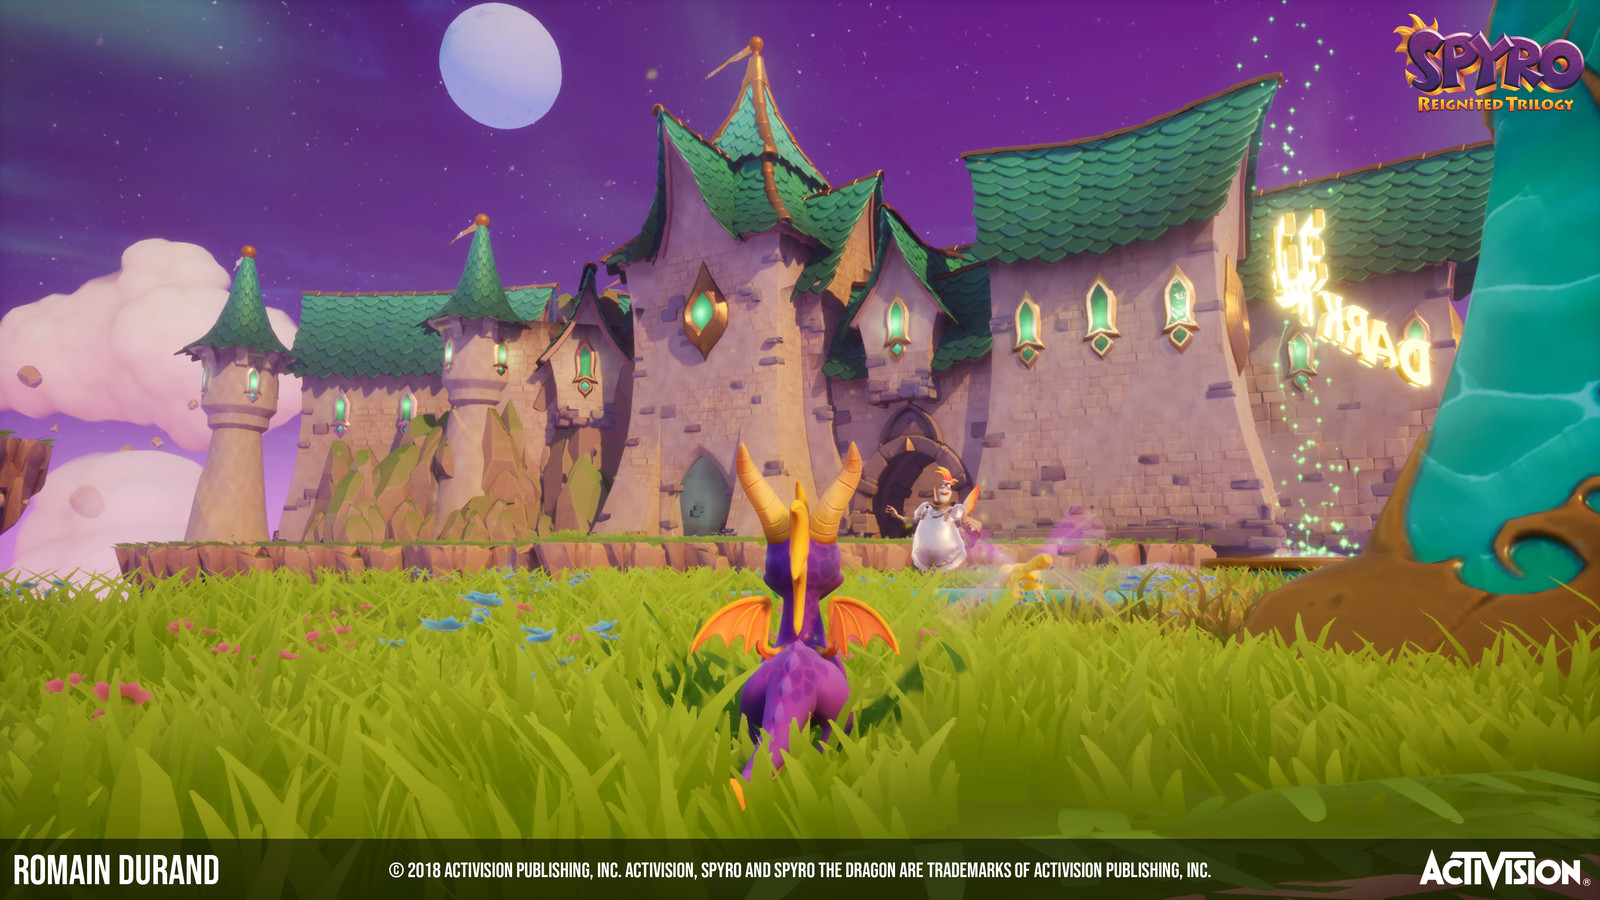 © 2018 Activision Publishing, Inc. ACTIVISION, SPYRO and SPYRO THE DRAGON are trademarks of Activision Publishing, Inc.